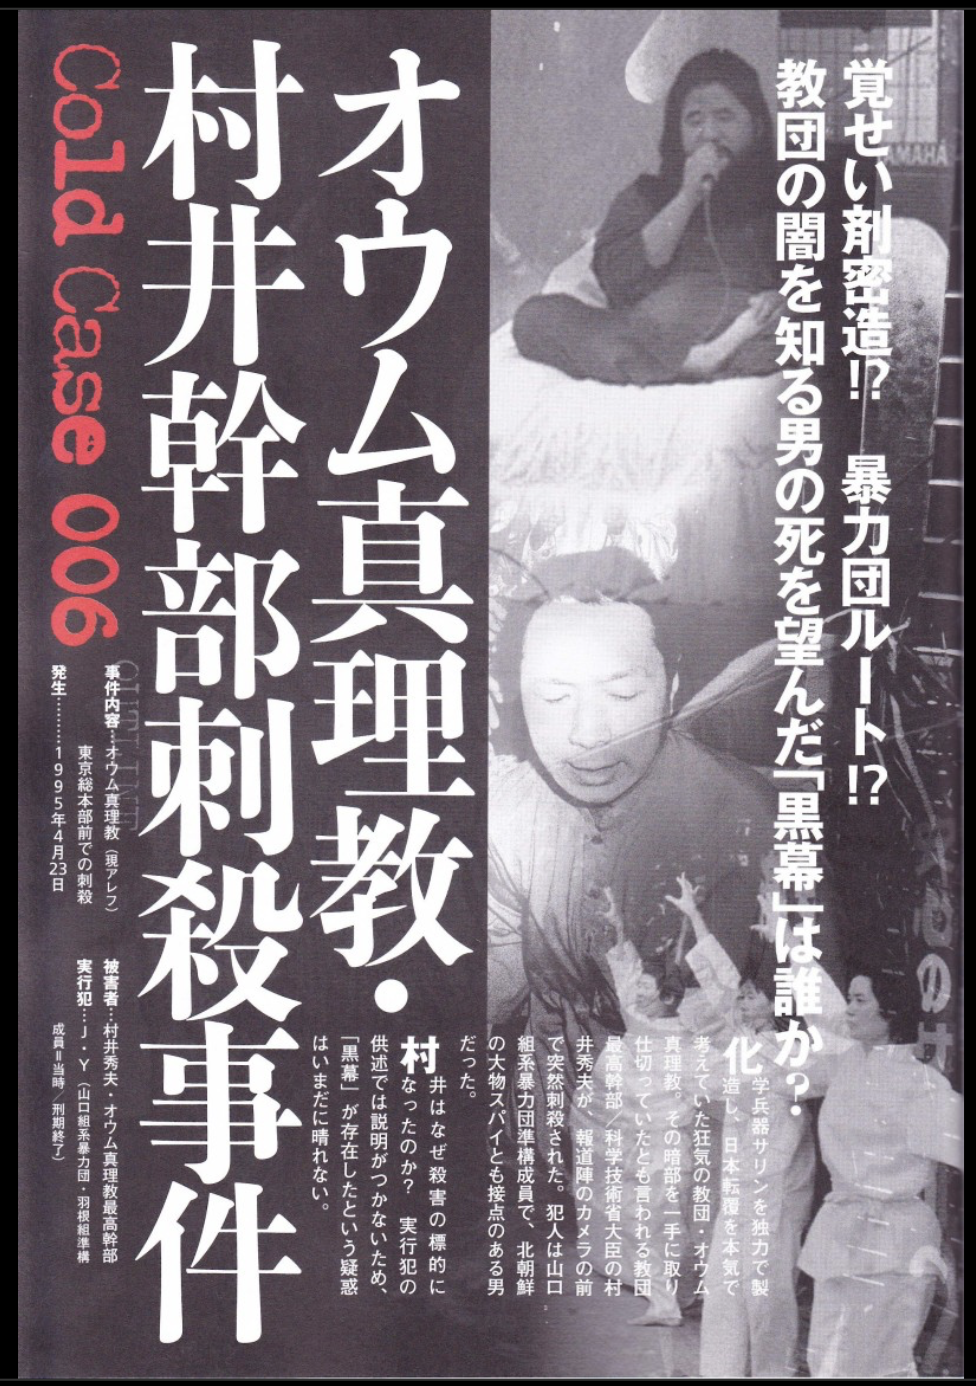 A Short History Of Aum Shinrikyo, their murders, and the failure to stop them